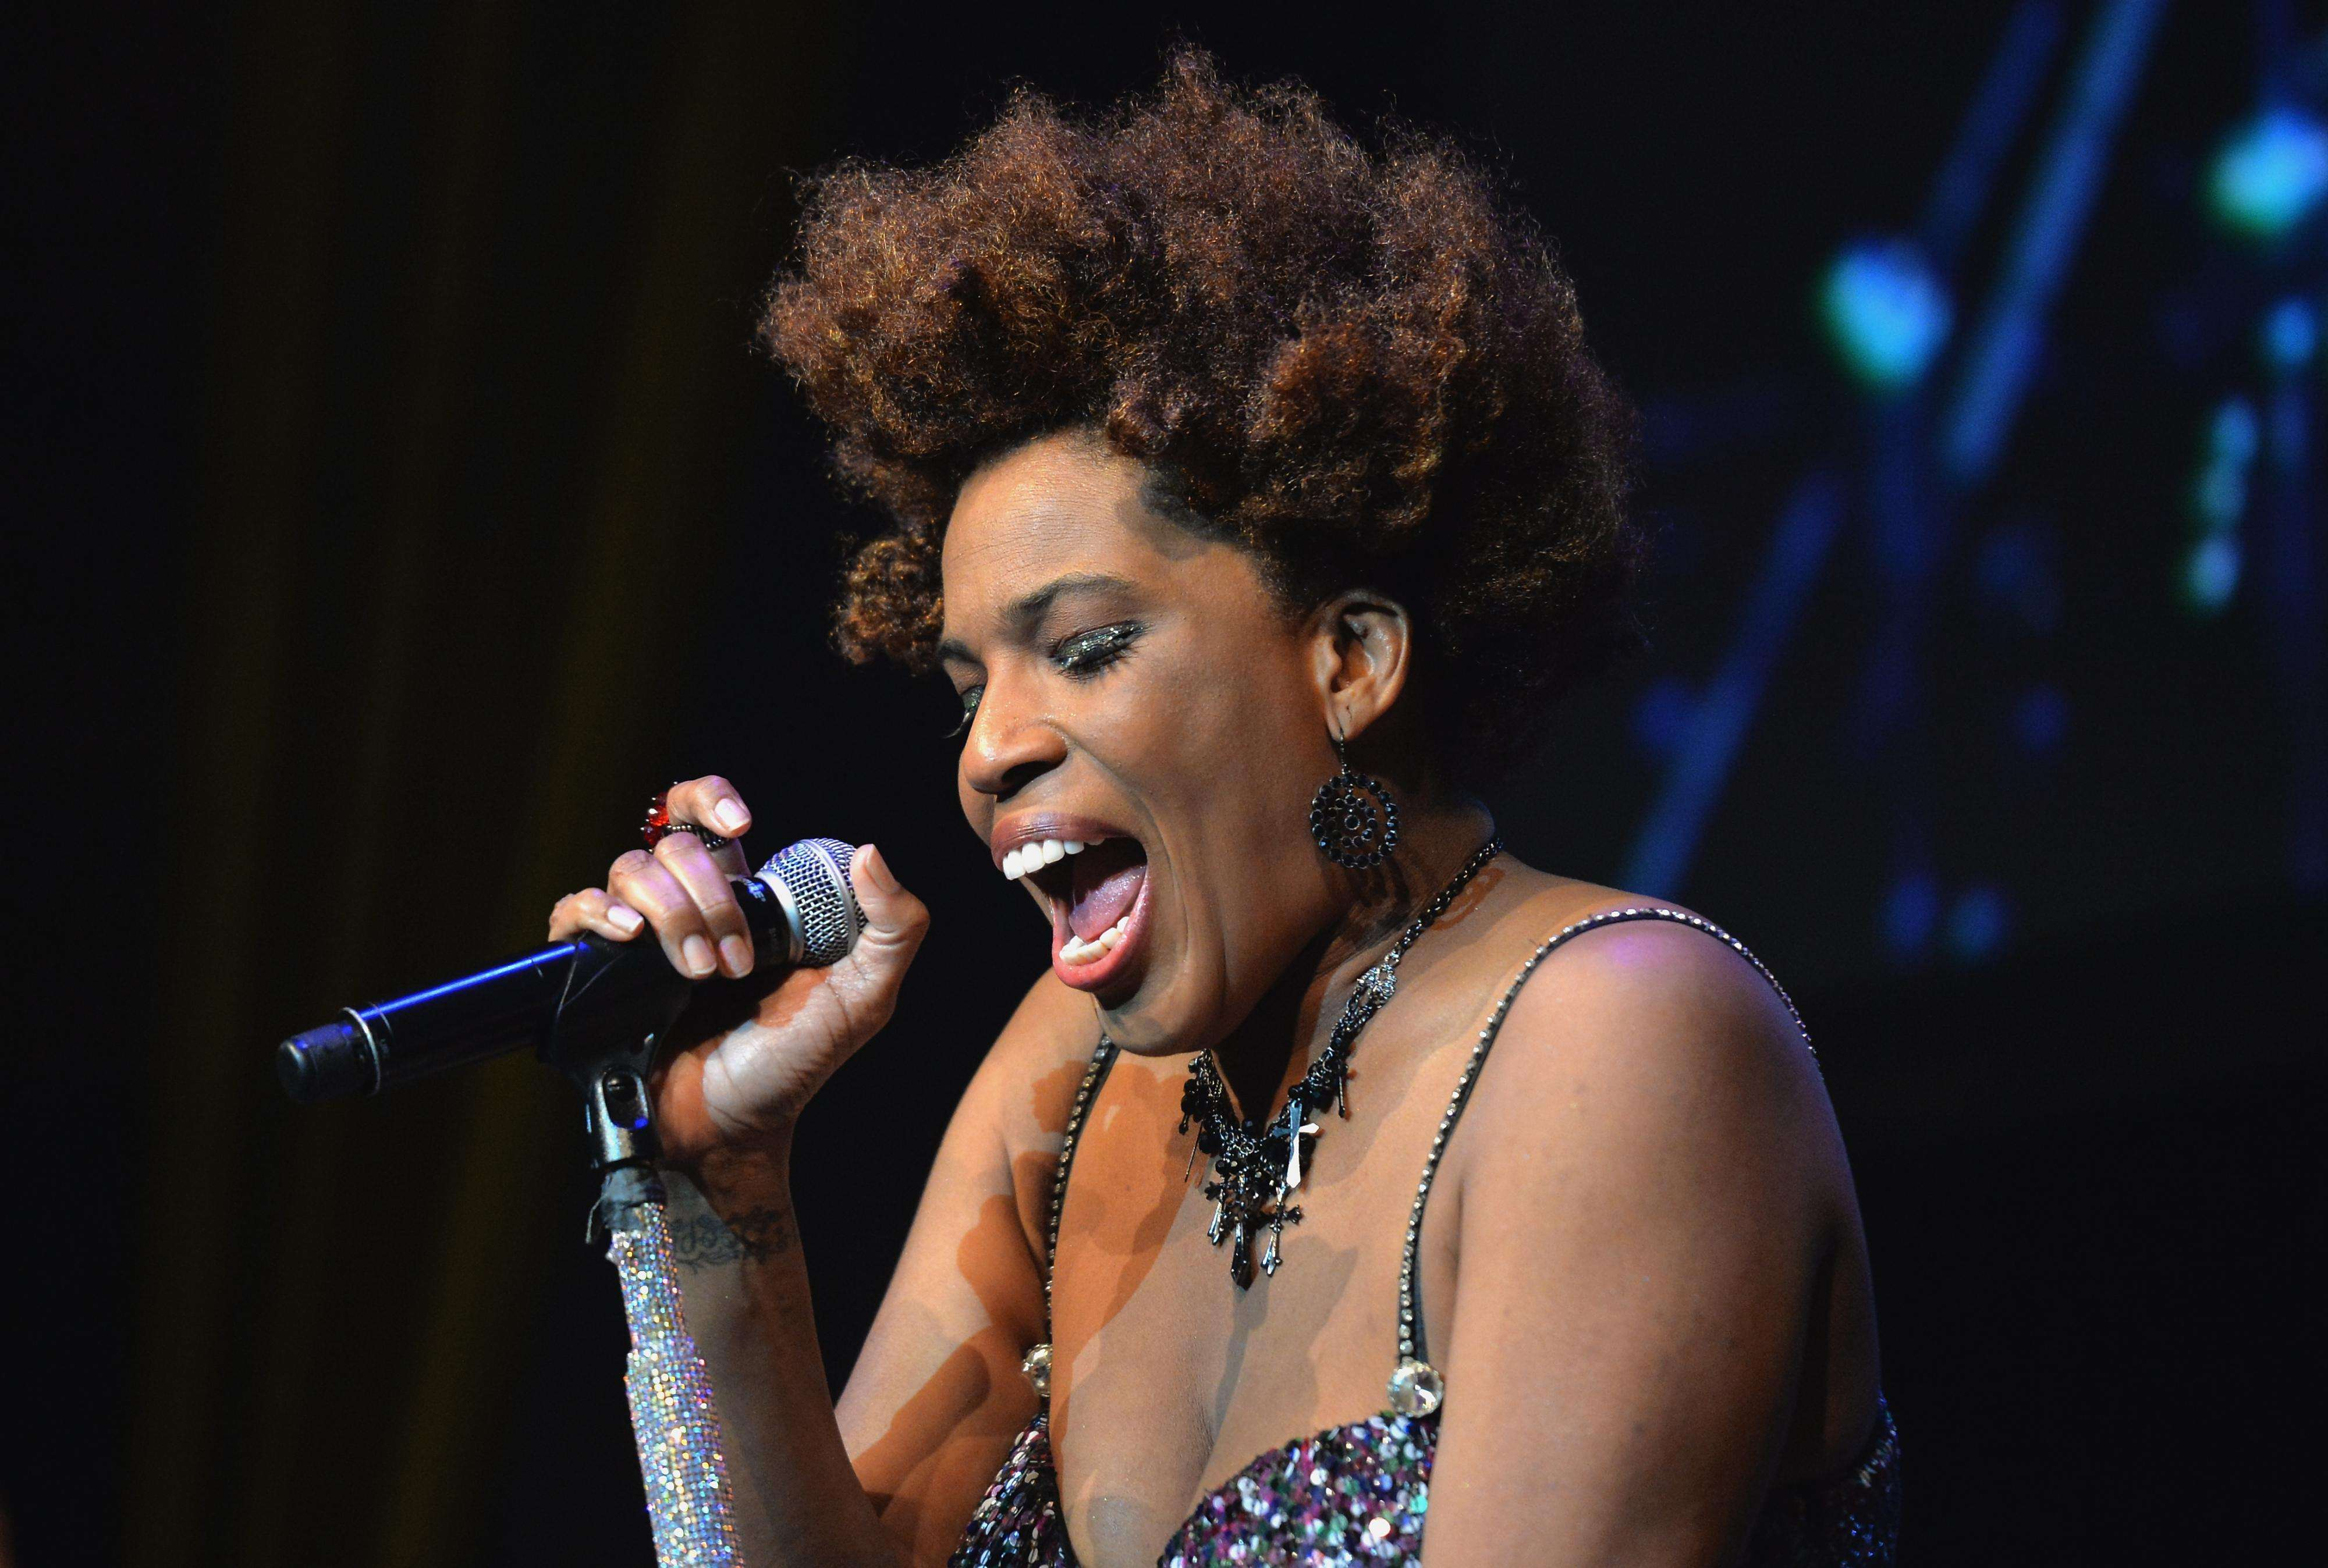 Macy Gray estará en Jazz al Parque como invitada del músico David Murray. Foto: Getty Images